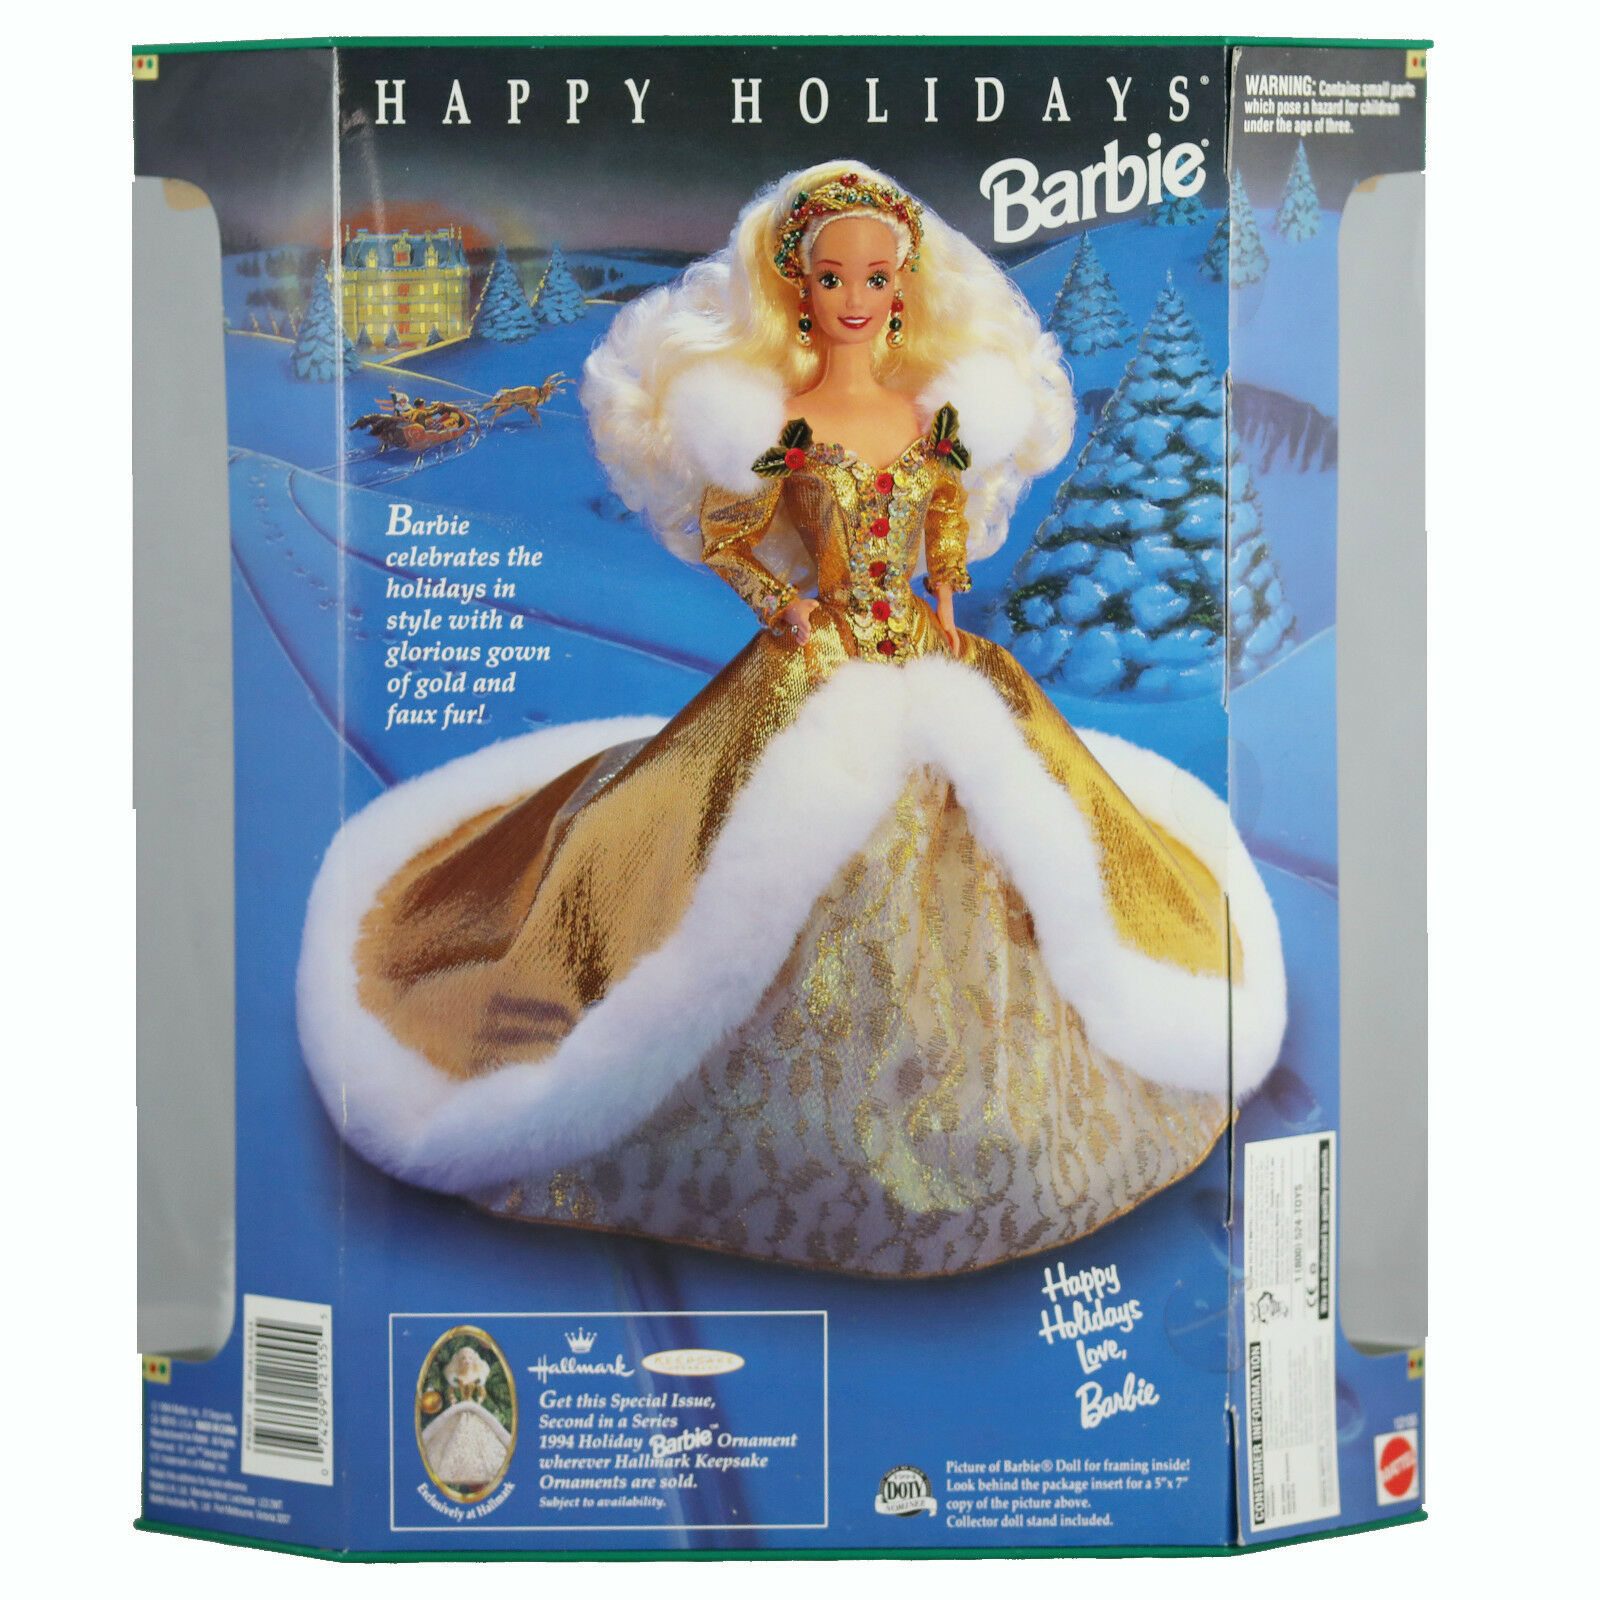 1994 Happy Holiday Barbie NRFB NRFB NRFB SIGNED by designer Janet Goldblatt 507991